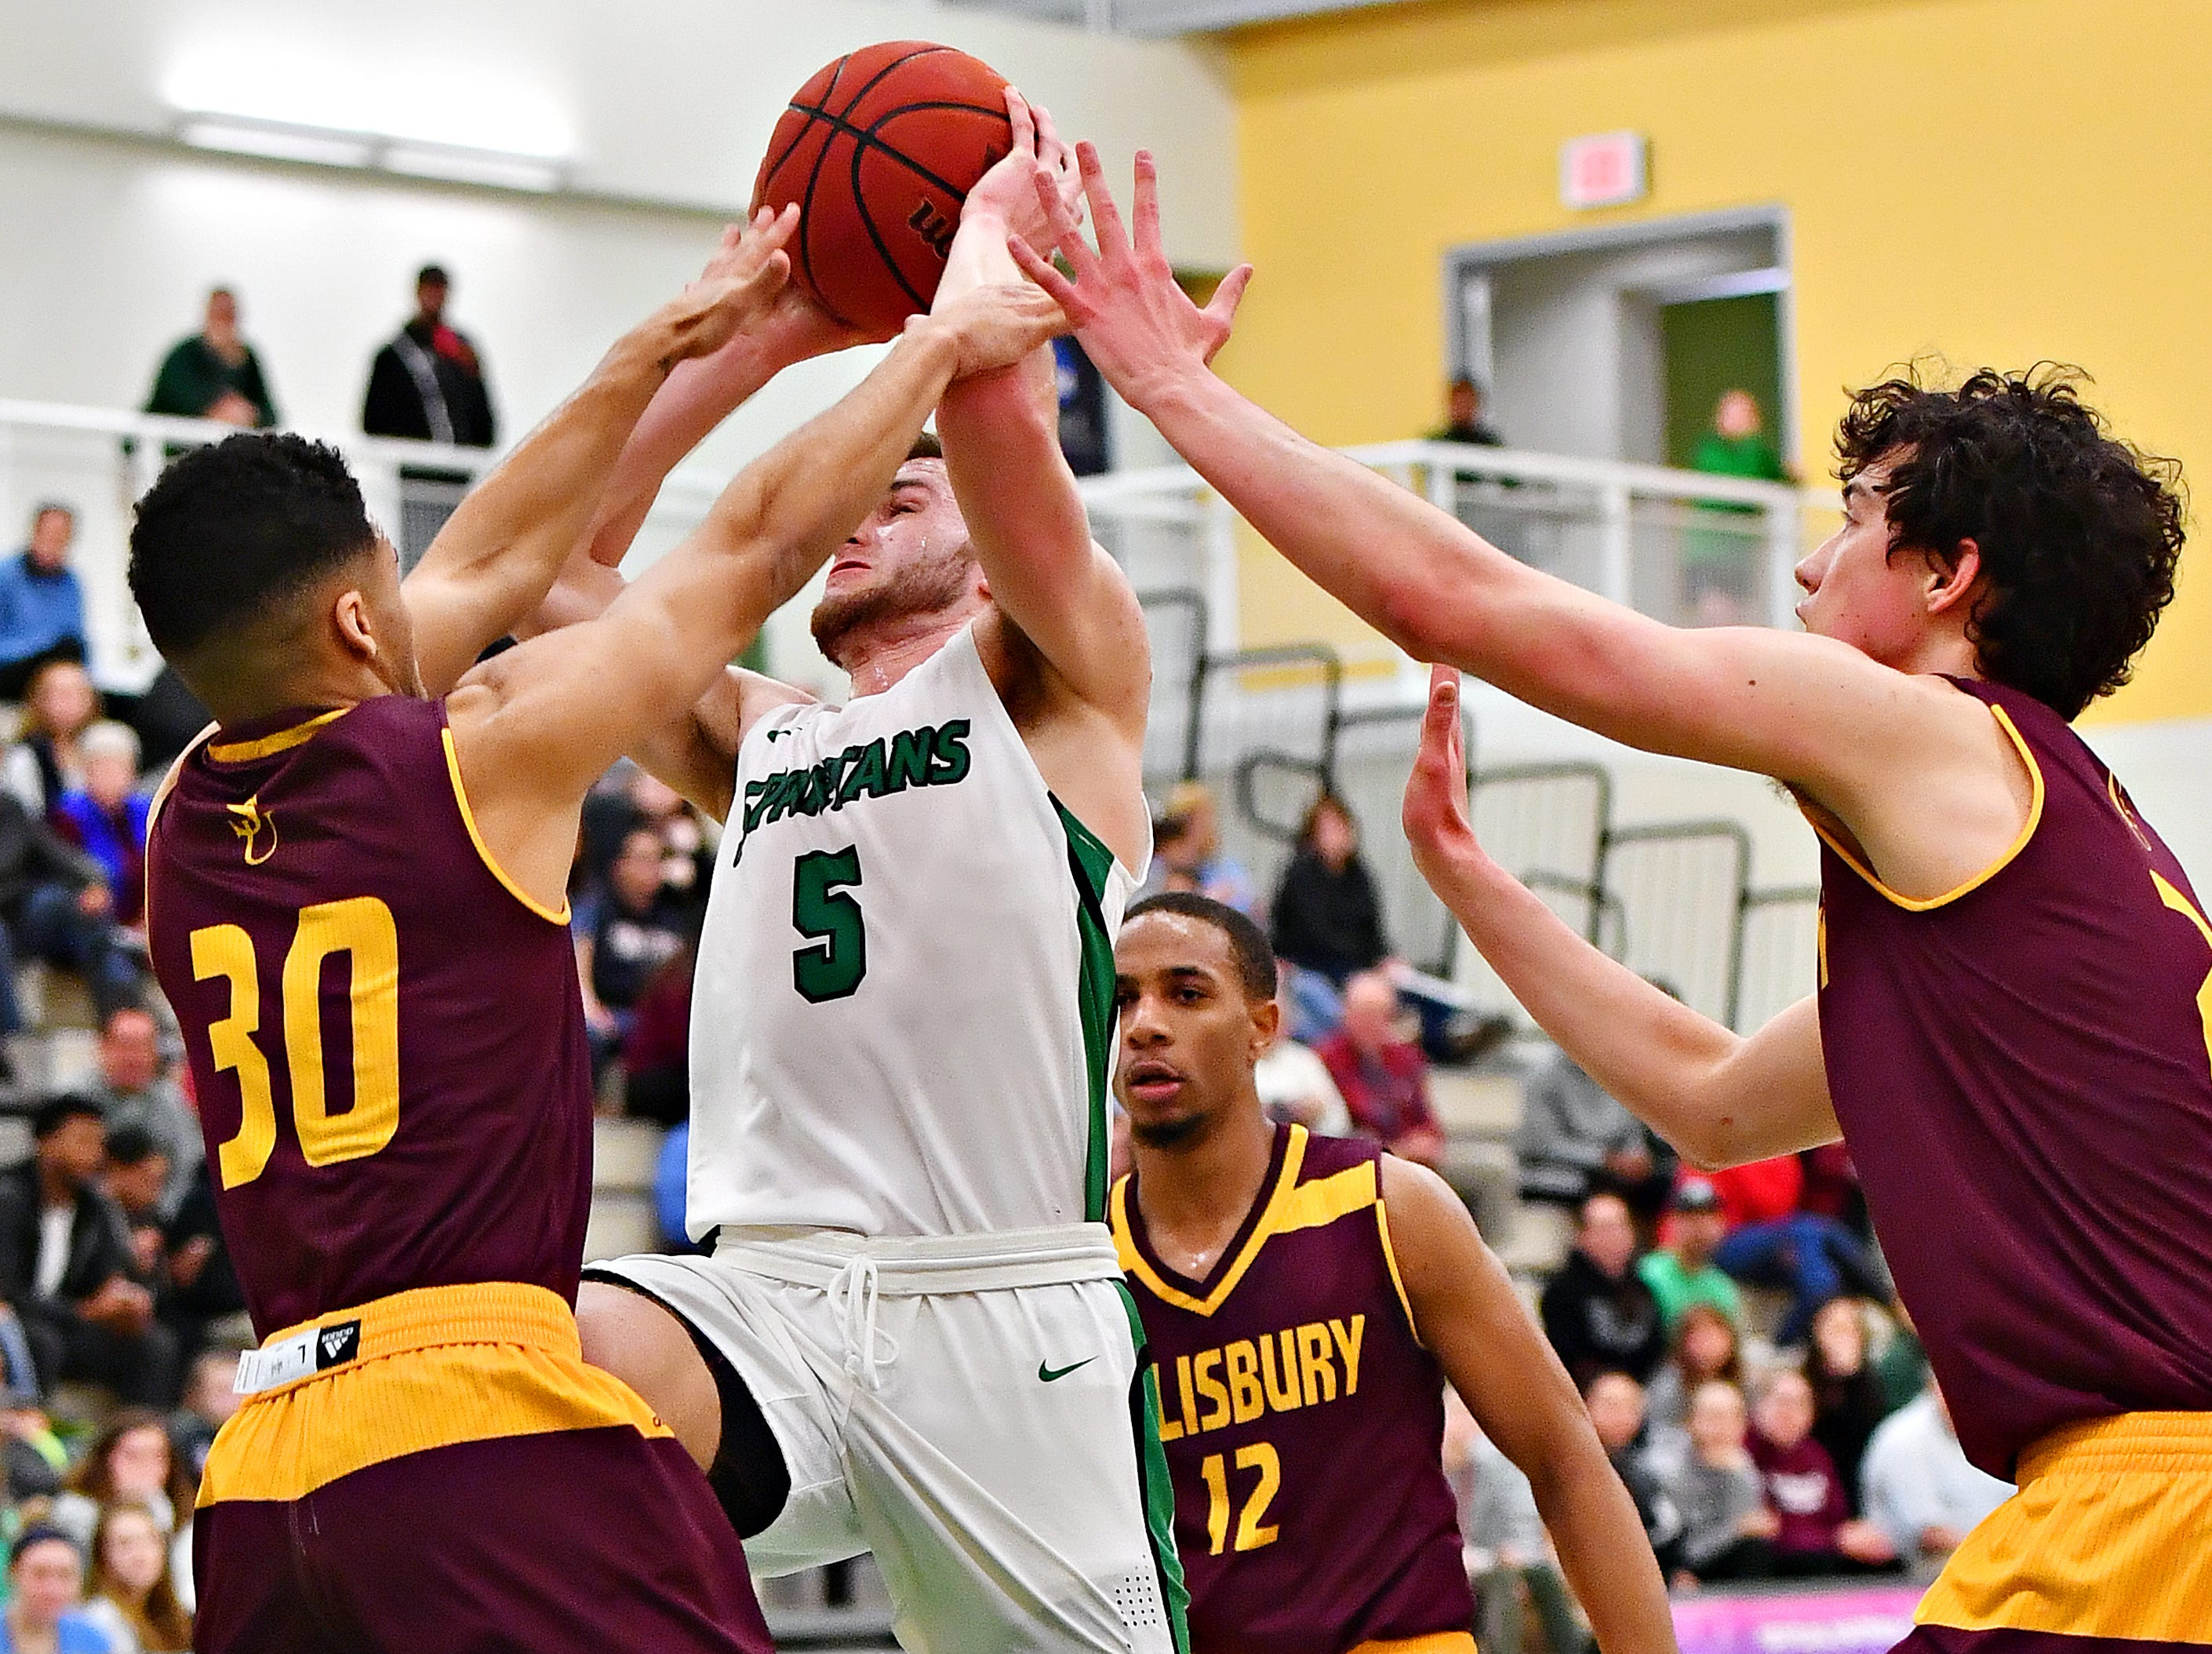 York College's Jared Wagner, second from left, gets past Salisbury's Braedon Dorsey, left, Lucas Martin, right, and Mike Ward to score during men's basketball action at Grumbacher Sport and Fitness Center at York College of Pennsylvania in Spring Garden Township, Wednesday, Feb. 6, 2019. Dawn J. Sagert photo